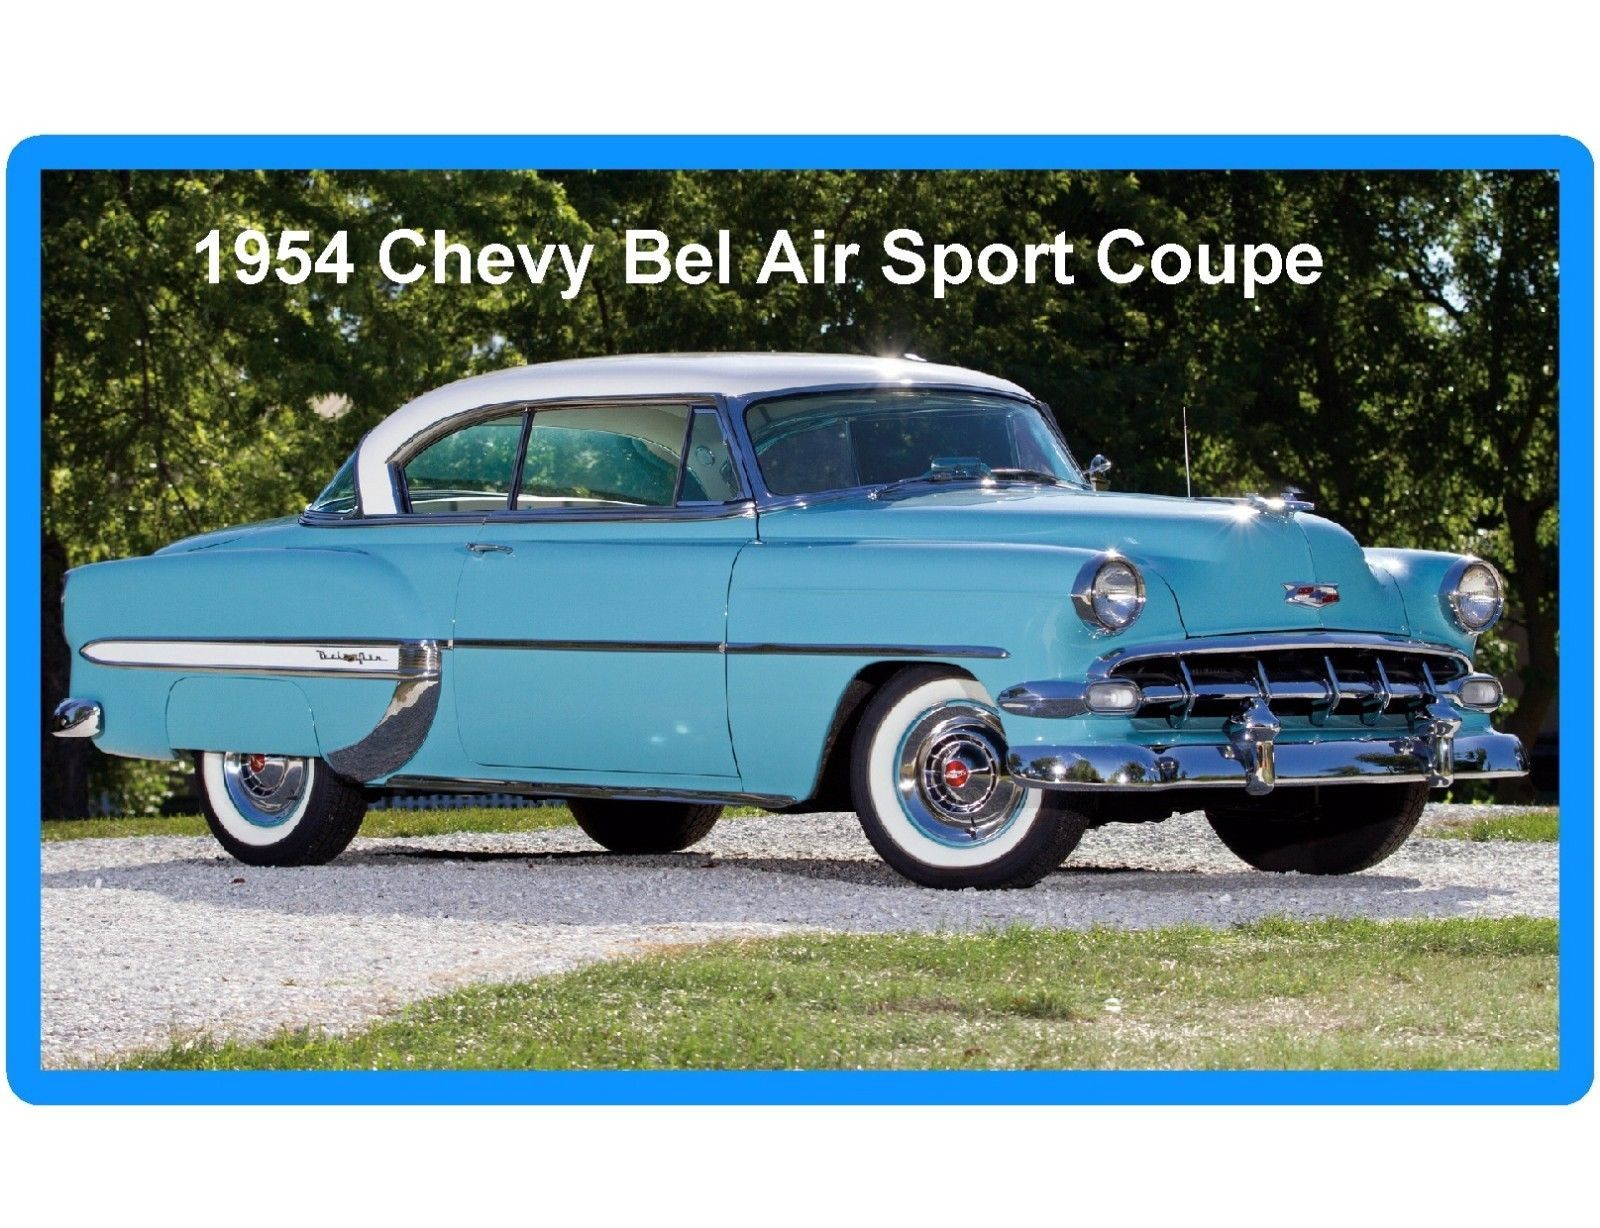 55 1954 Chevy Bel Air Sport Coupe Refrigerator Toolbox Magnet Ebay Collectibles